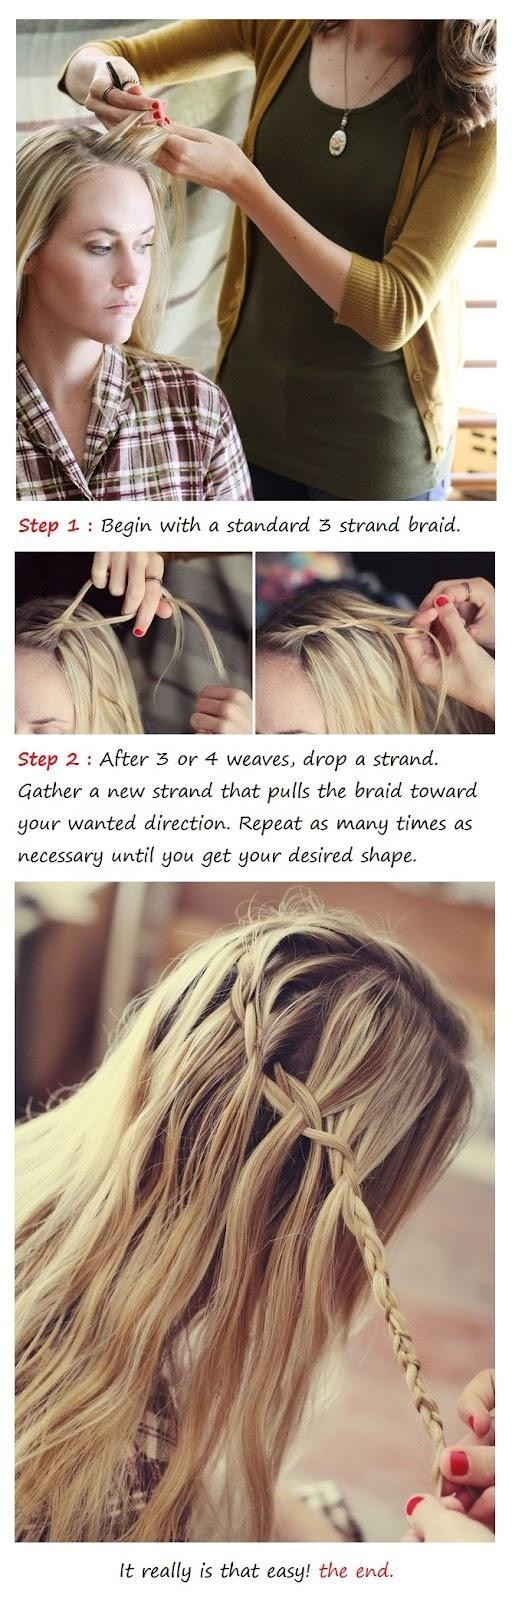 Trendy Braids 2014: Waterfall Braid Tutorial